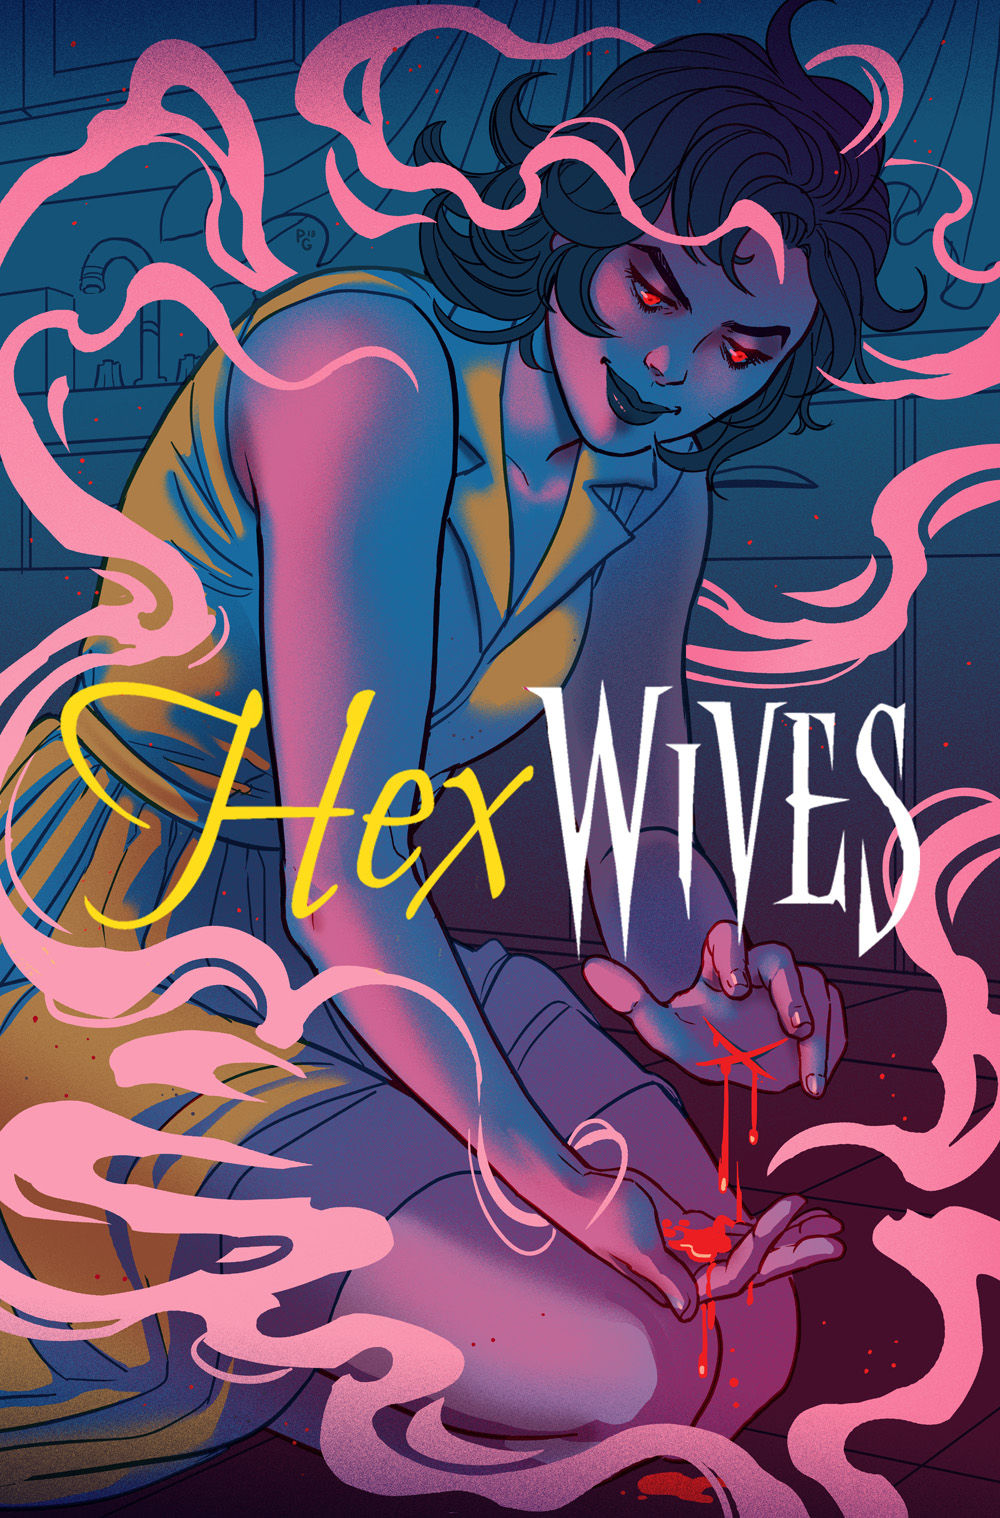 hexwives_Final_coverv2_changes.jpg